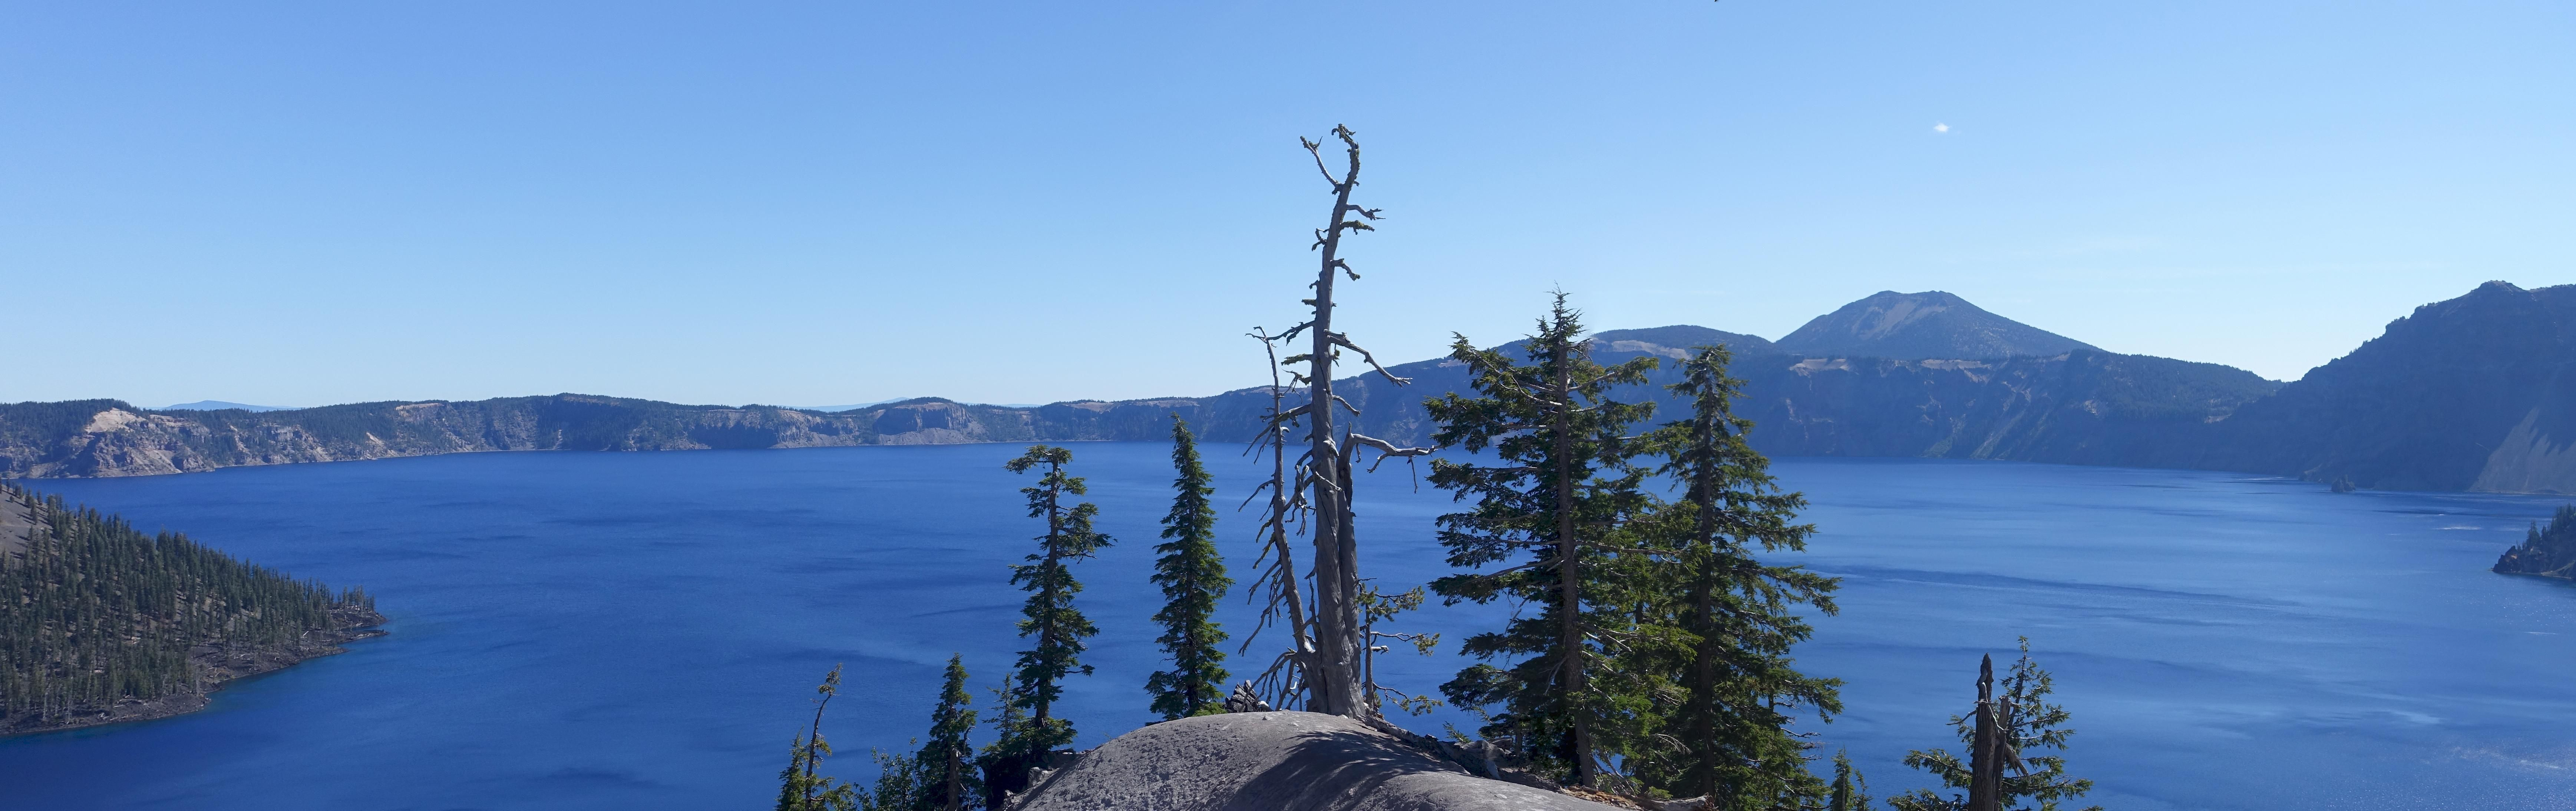 ITAP of Crater Lake Oregon. (Wide Panorama - stitched) #photo #background #editor #wallpaper #photohd #photonew #photobackground #pics #craterlakeoregon ITAP of Crater Lake Oregon. (Wide Panorama - stitched) #photo #background #editor #wallpaper #photohd #photonew #photobackground #pics #craterlakeoregon ITAP of Crater Lake Oregon. (Wide Panorama - stitched) #photo #background #editor #wallpaper #photohd #photonew #photobackground #pics #craterlakeoregon ITAP of Crater Lake Oregon. (Wide Panoram #craterlakeoregon